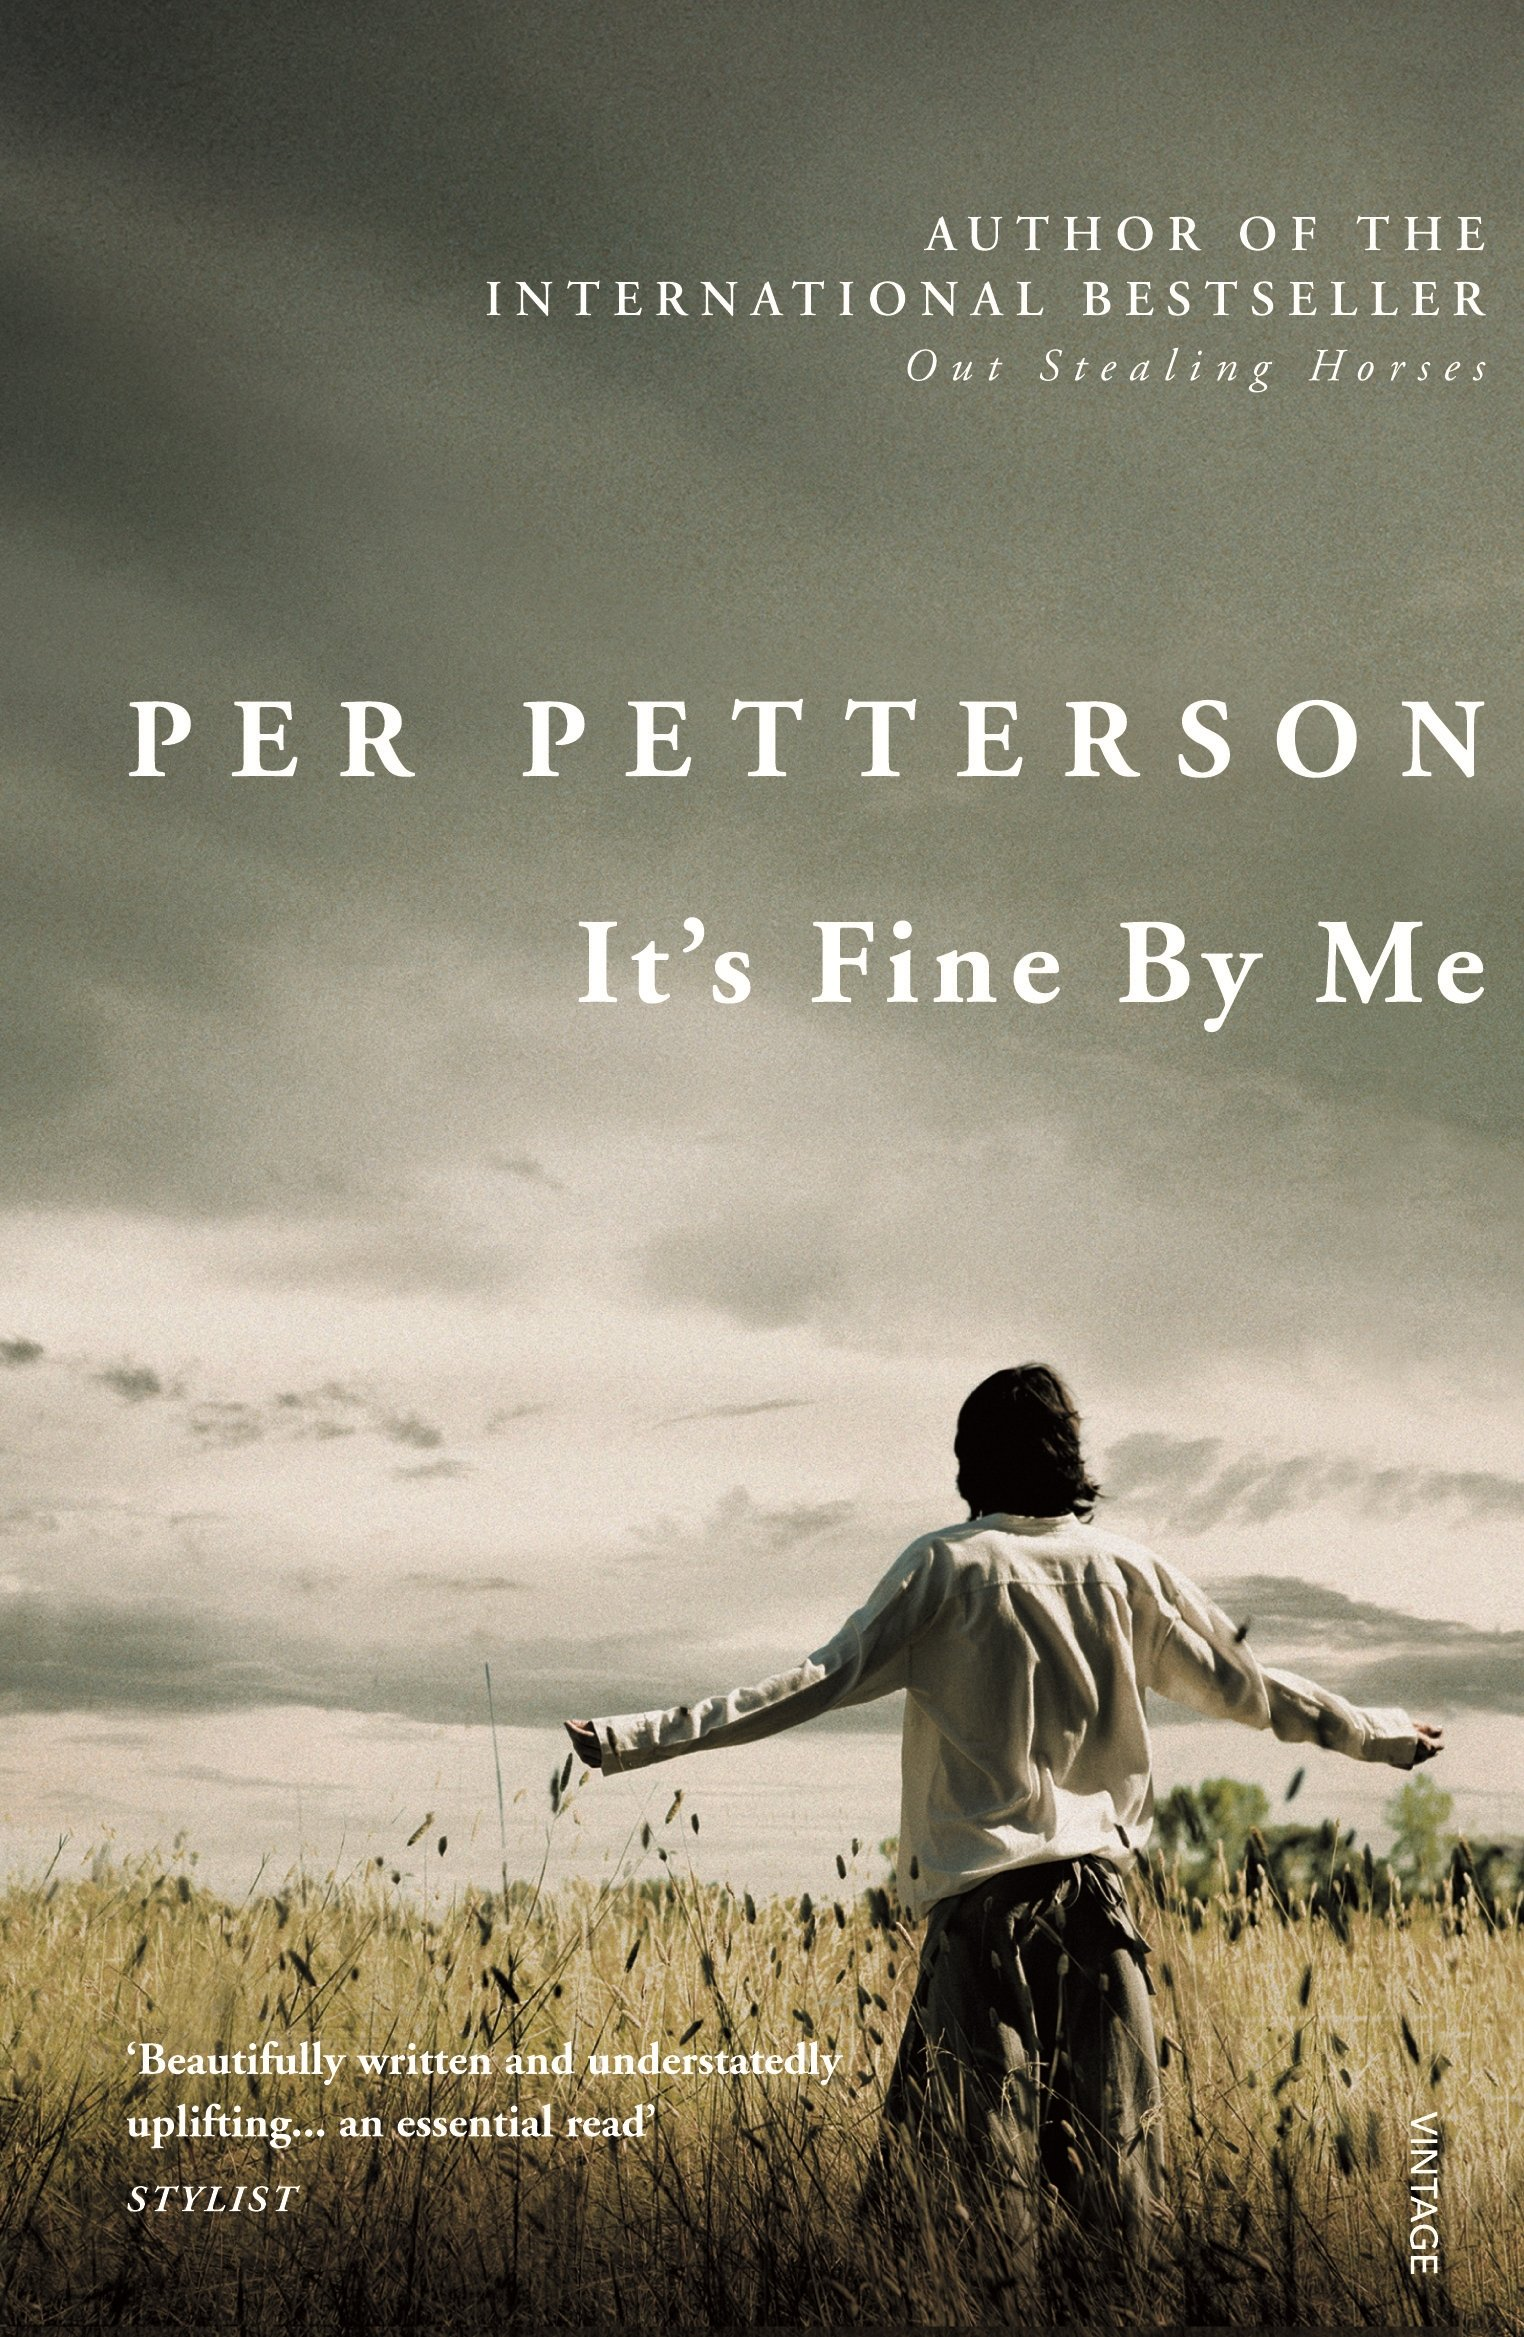 It's Fine By Me: Amazon.de: Petterson, Per, Bartlett, Don ...